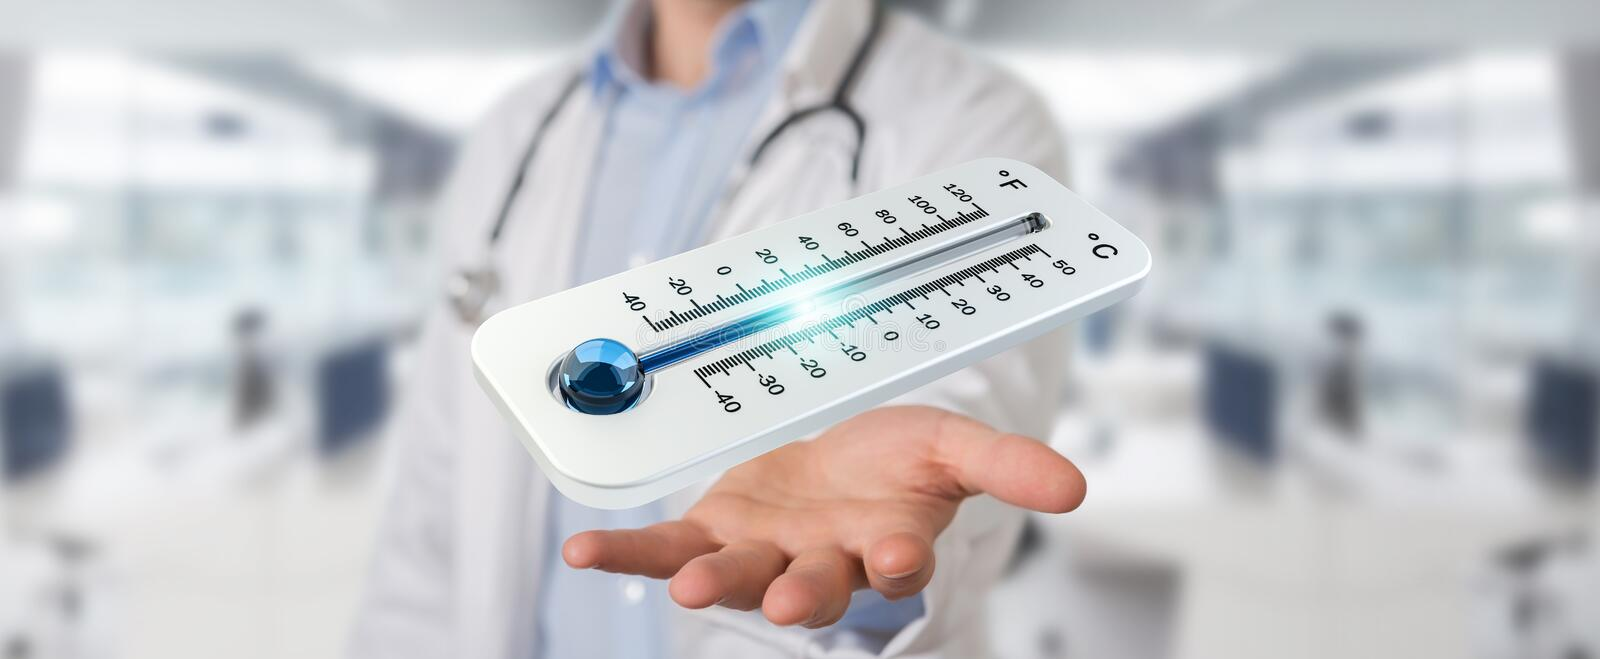 Doctor holding red hot digital thermometer 3D rendering royalty free illustration